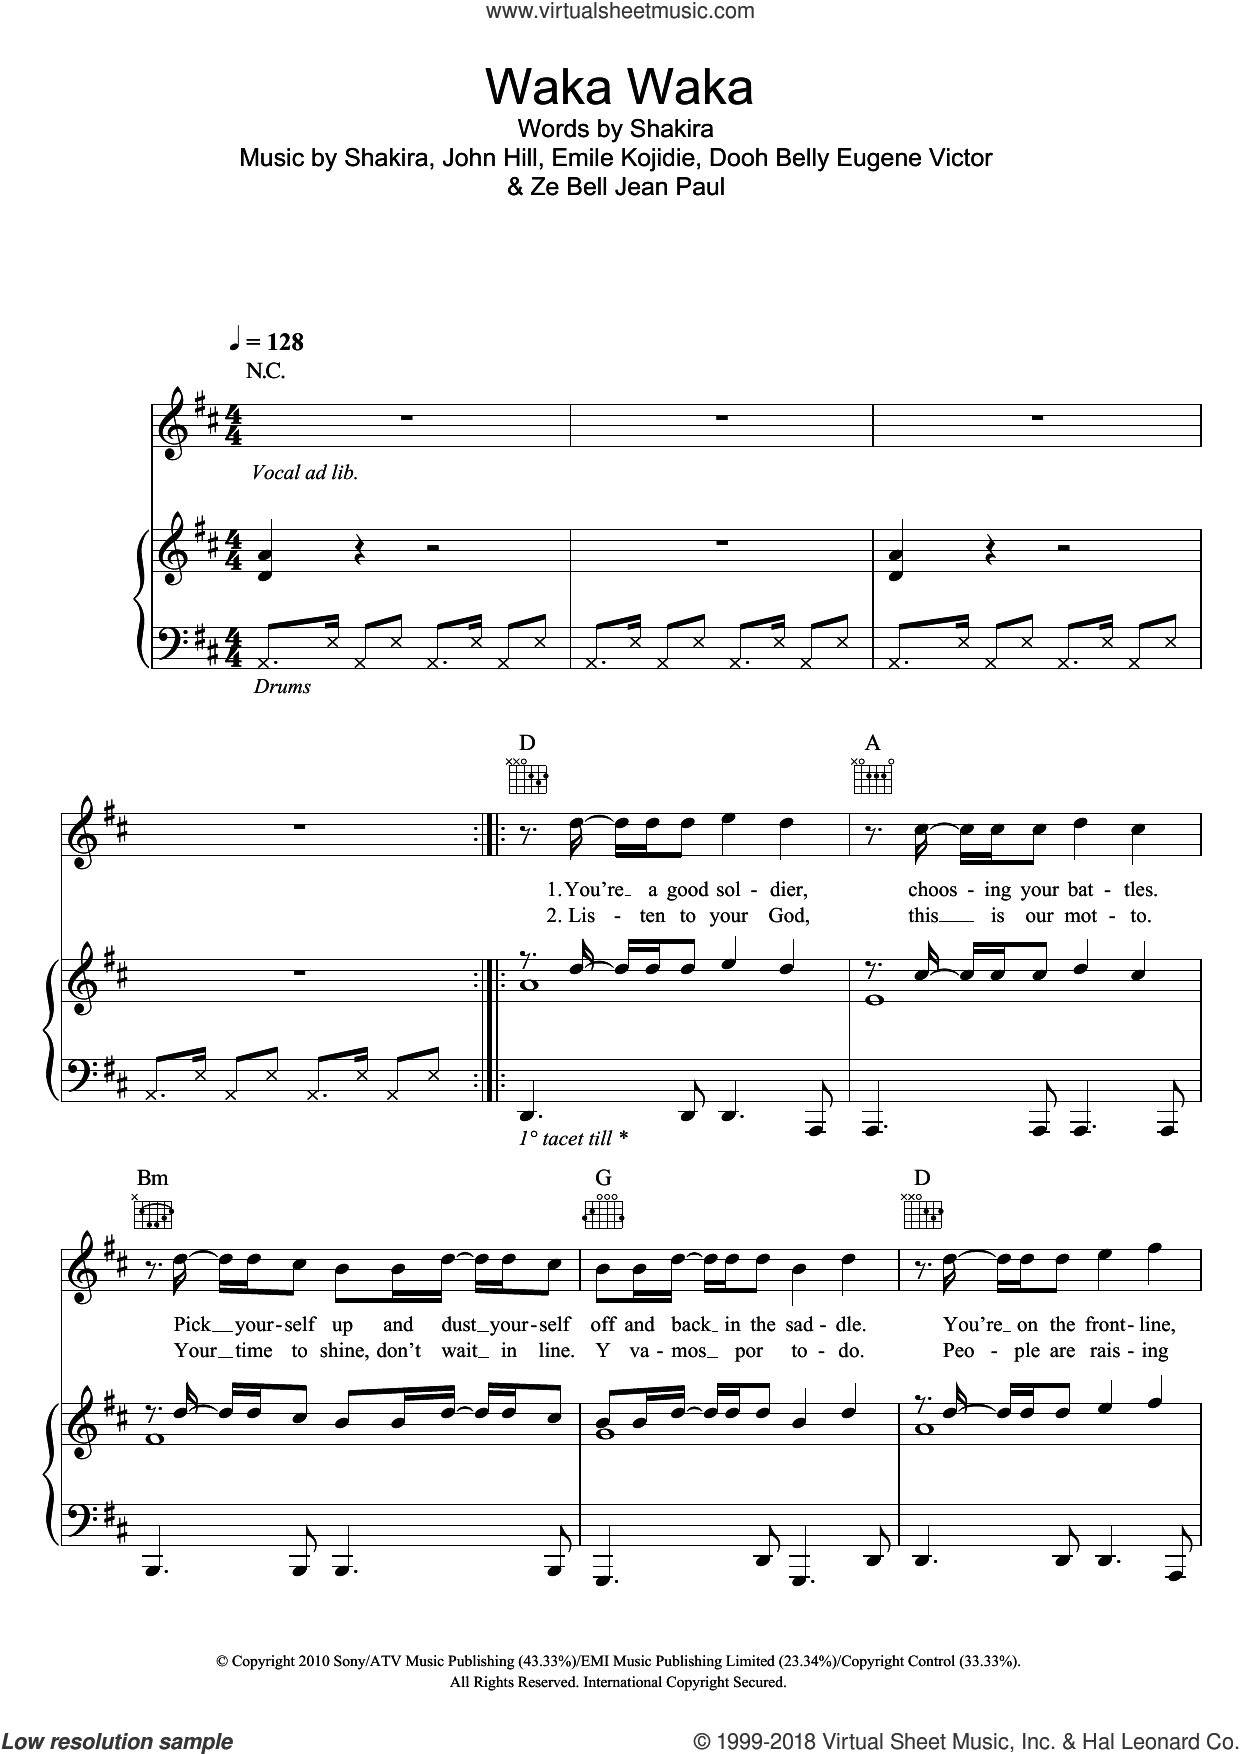 Waka Waka (This Time For Africa) (2010 FIFA World Cup Song) sheet music for voice, piano or guitar by Ze Bell Jean Paul, Shakira, Dooh Belly Eugene Victor and John Hill. Score Image Preview.